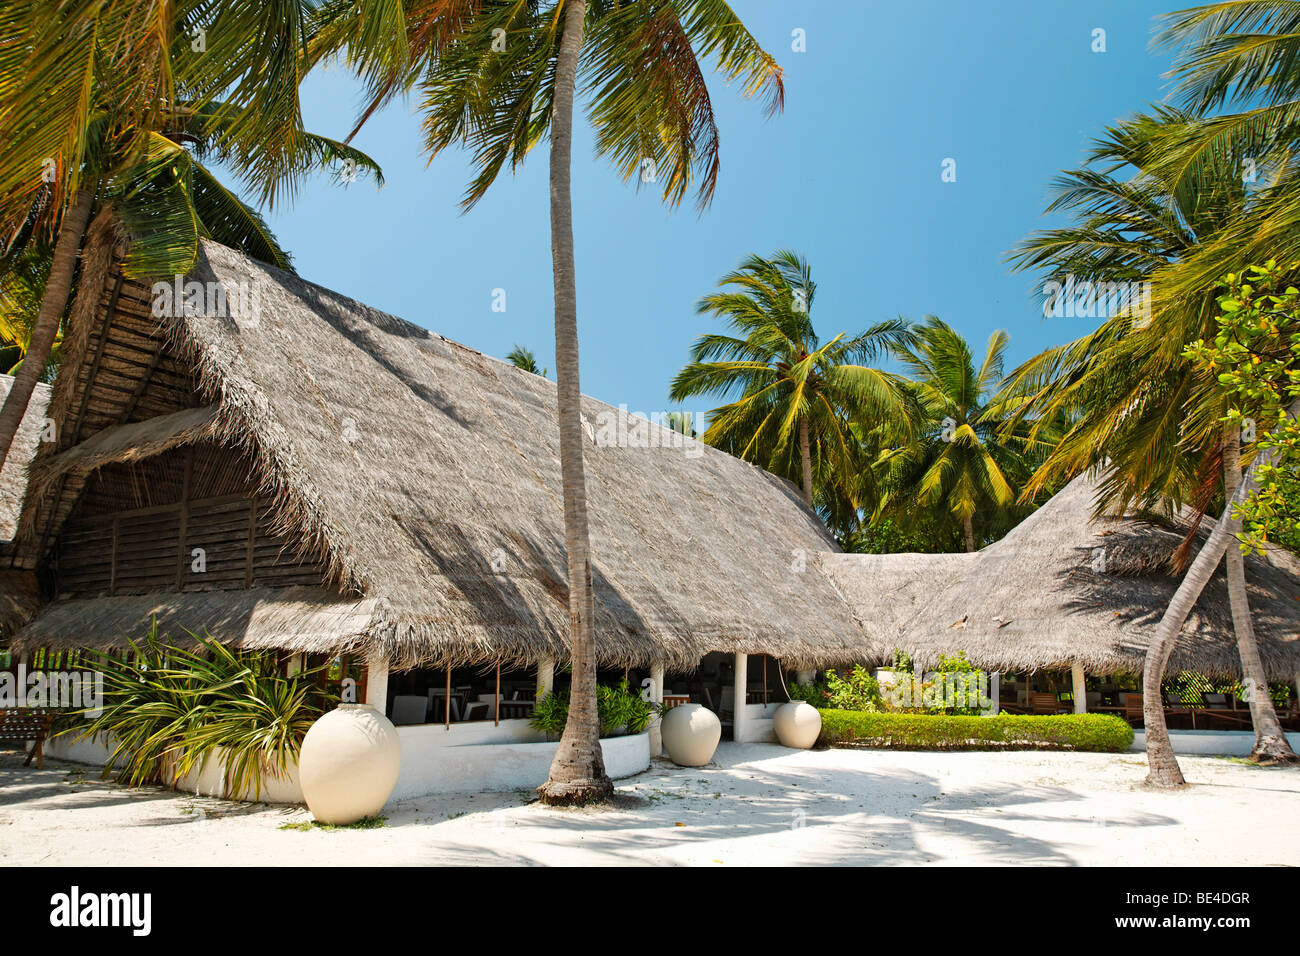 Main building lobby, bar, building, Maldive island, South Male Atoll, Maldives, Achipelago, Asia, Indian Ocean - Stock Image